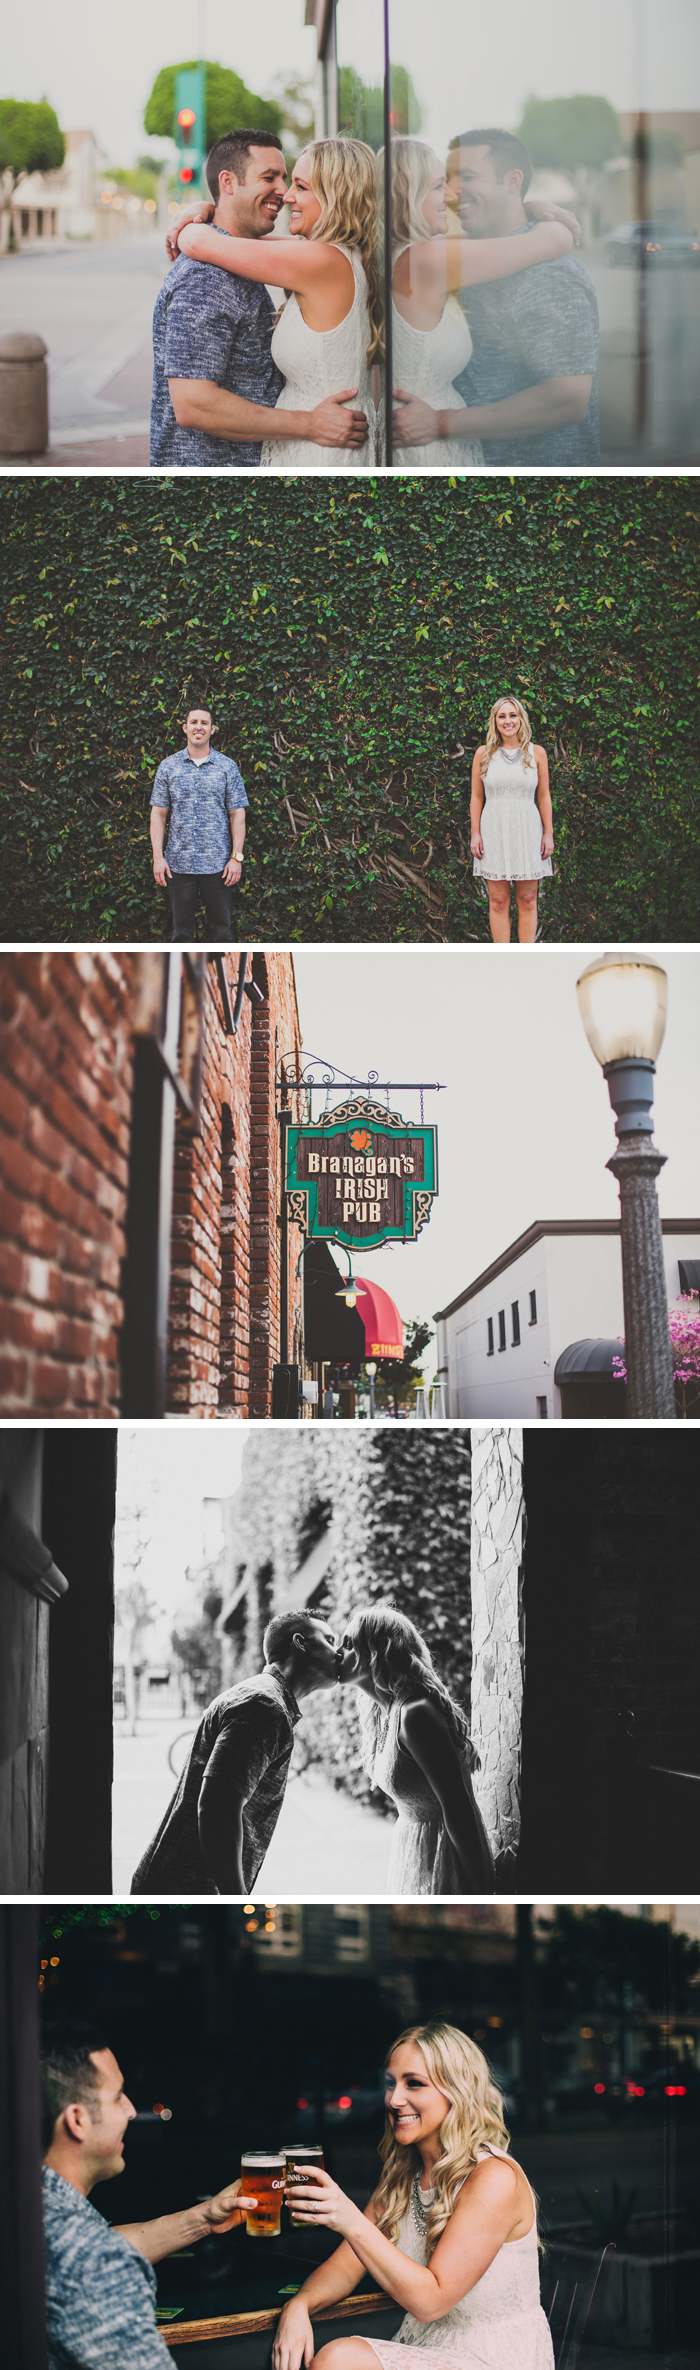 Downtown Fullerton Engagement Photos